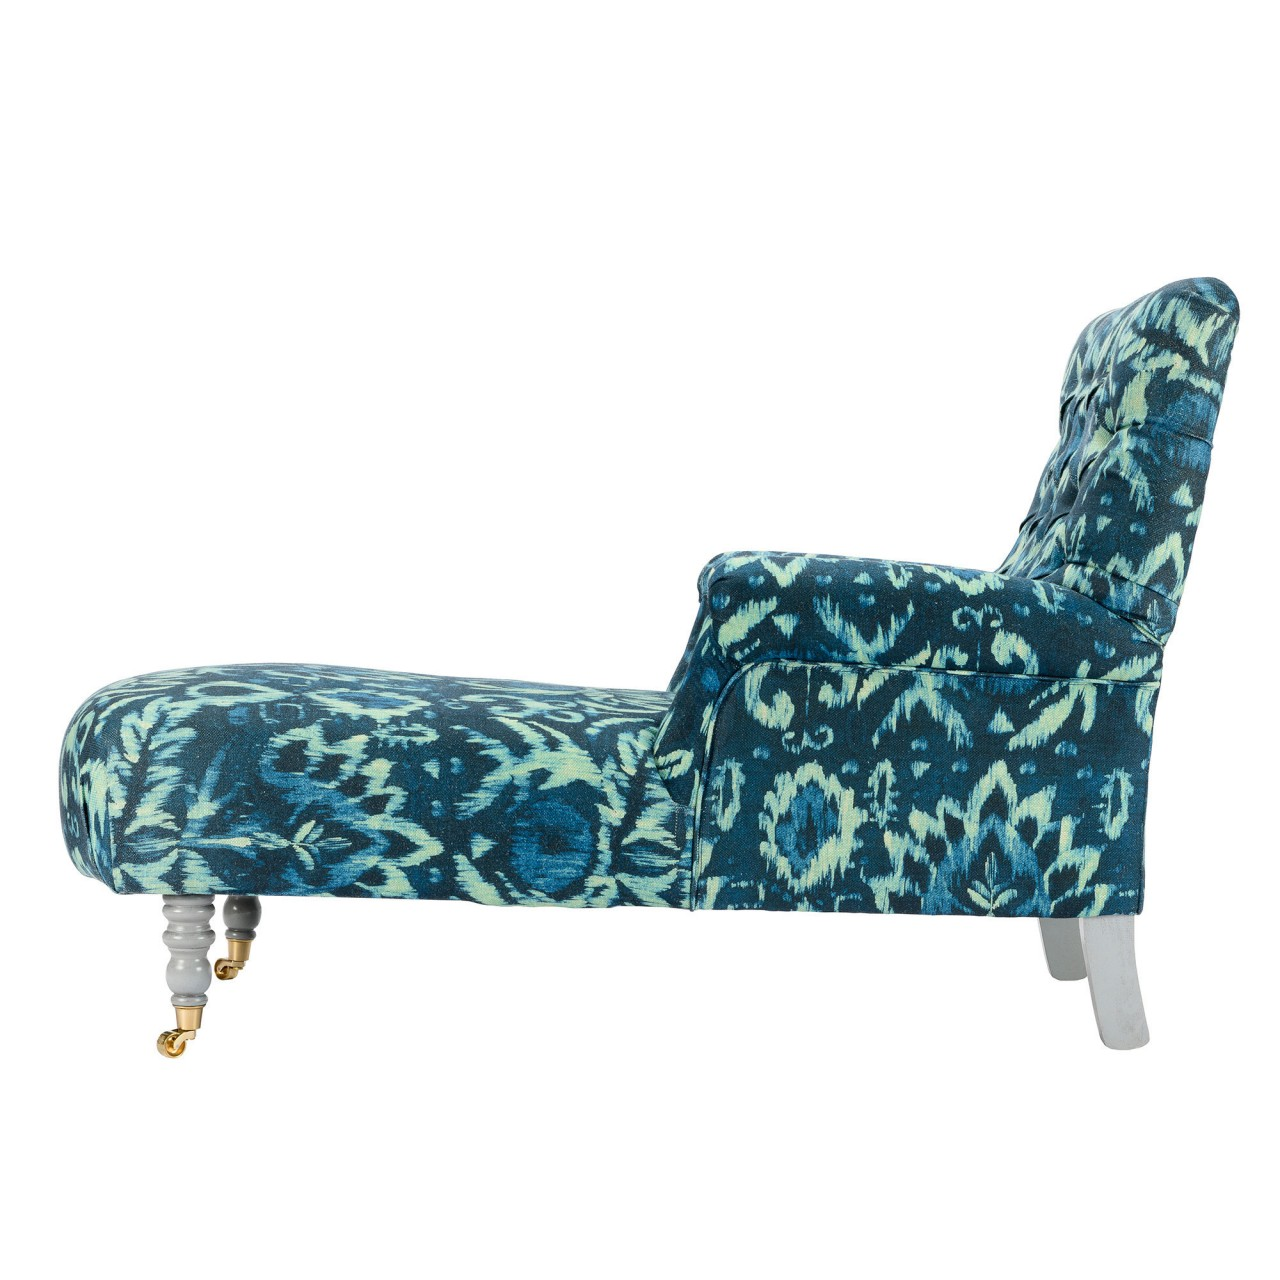 MADISON CHAISE - IONIAN Linen